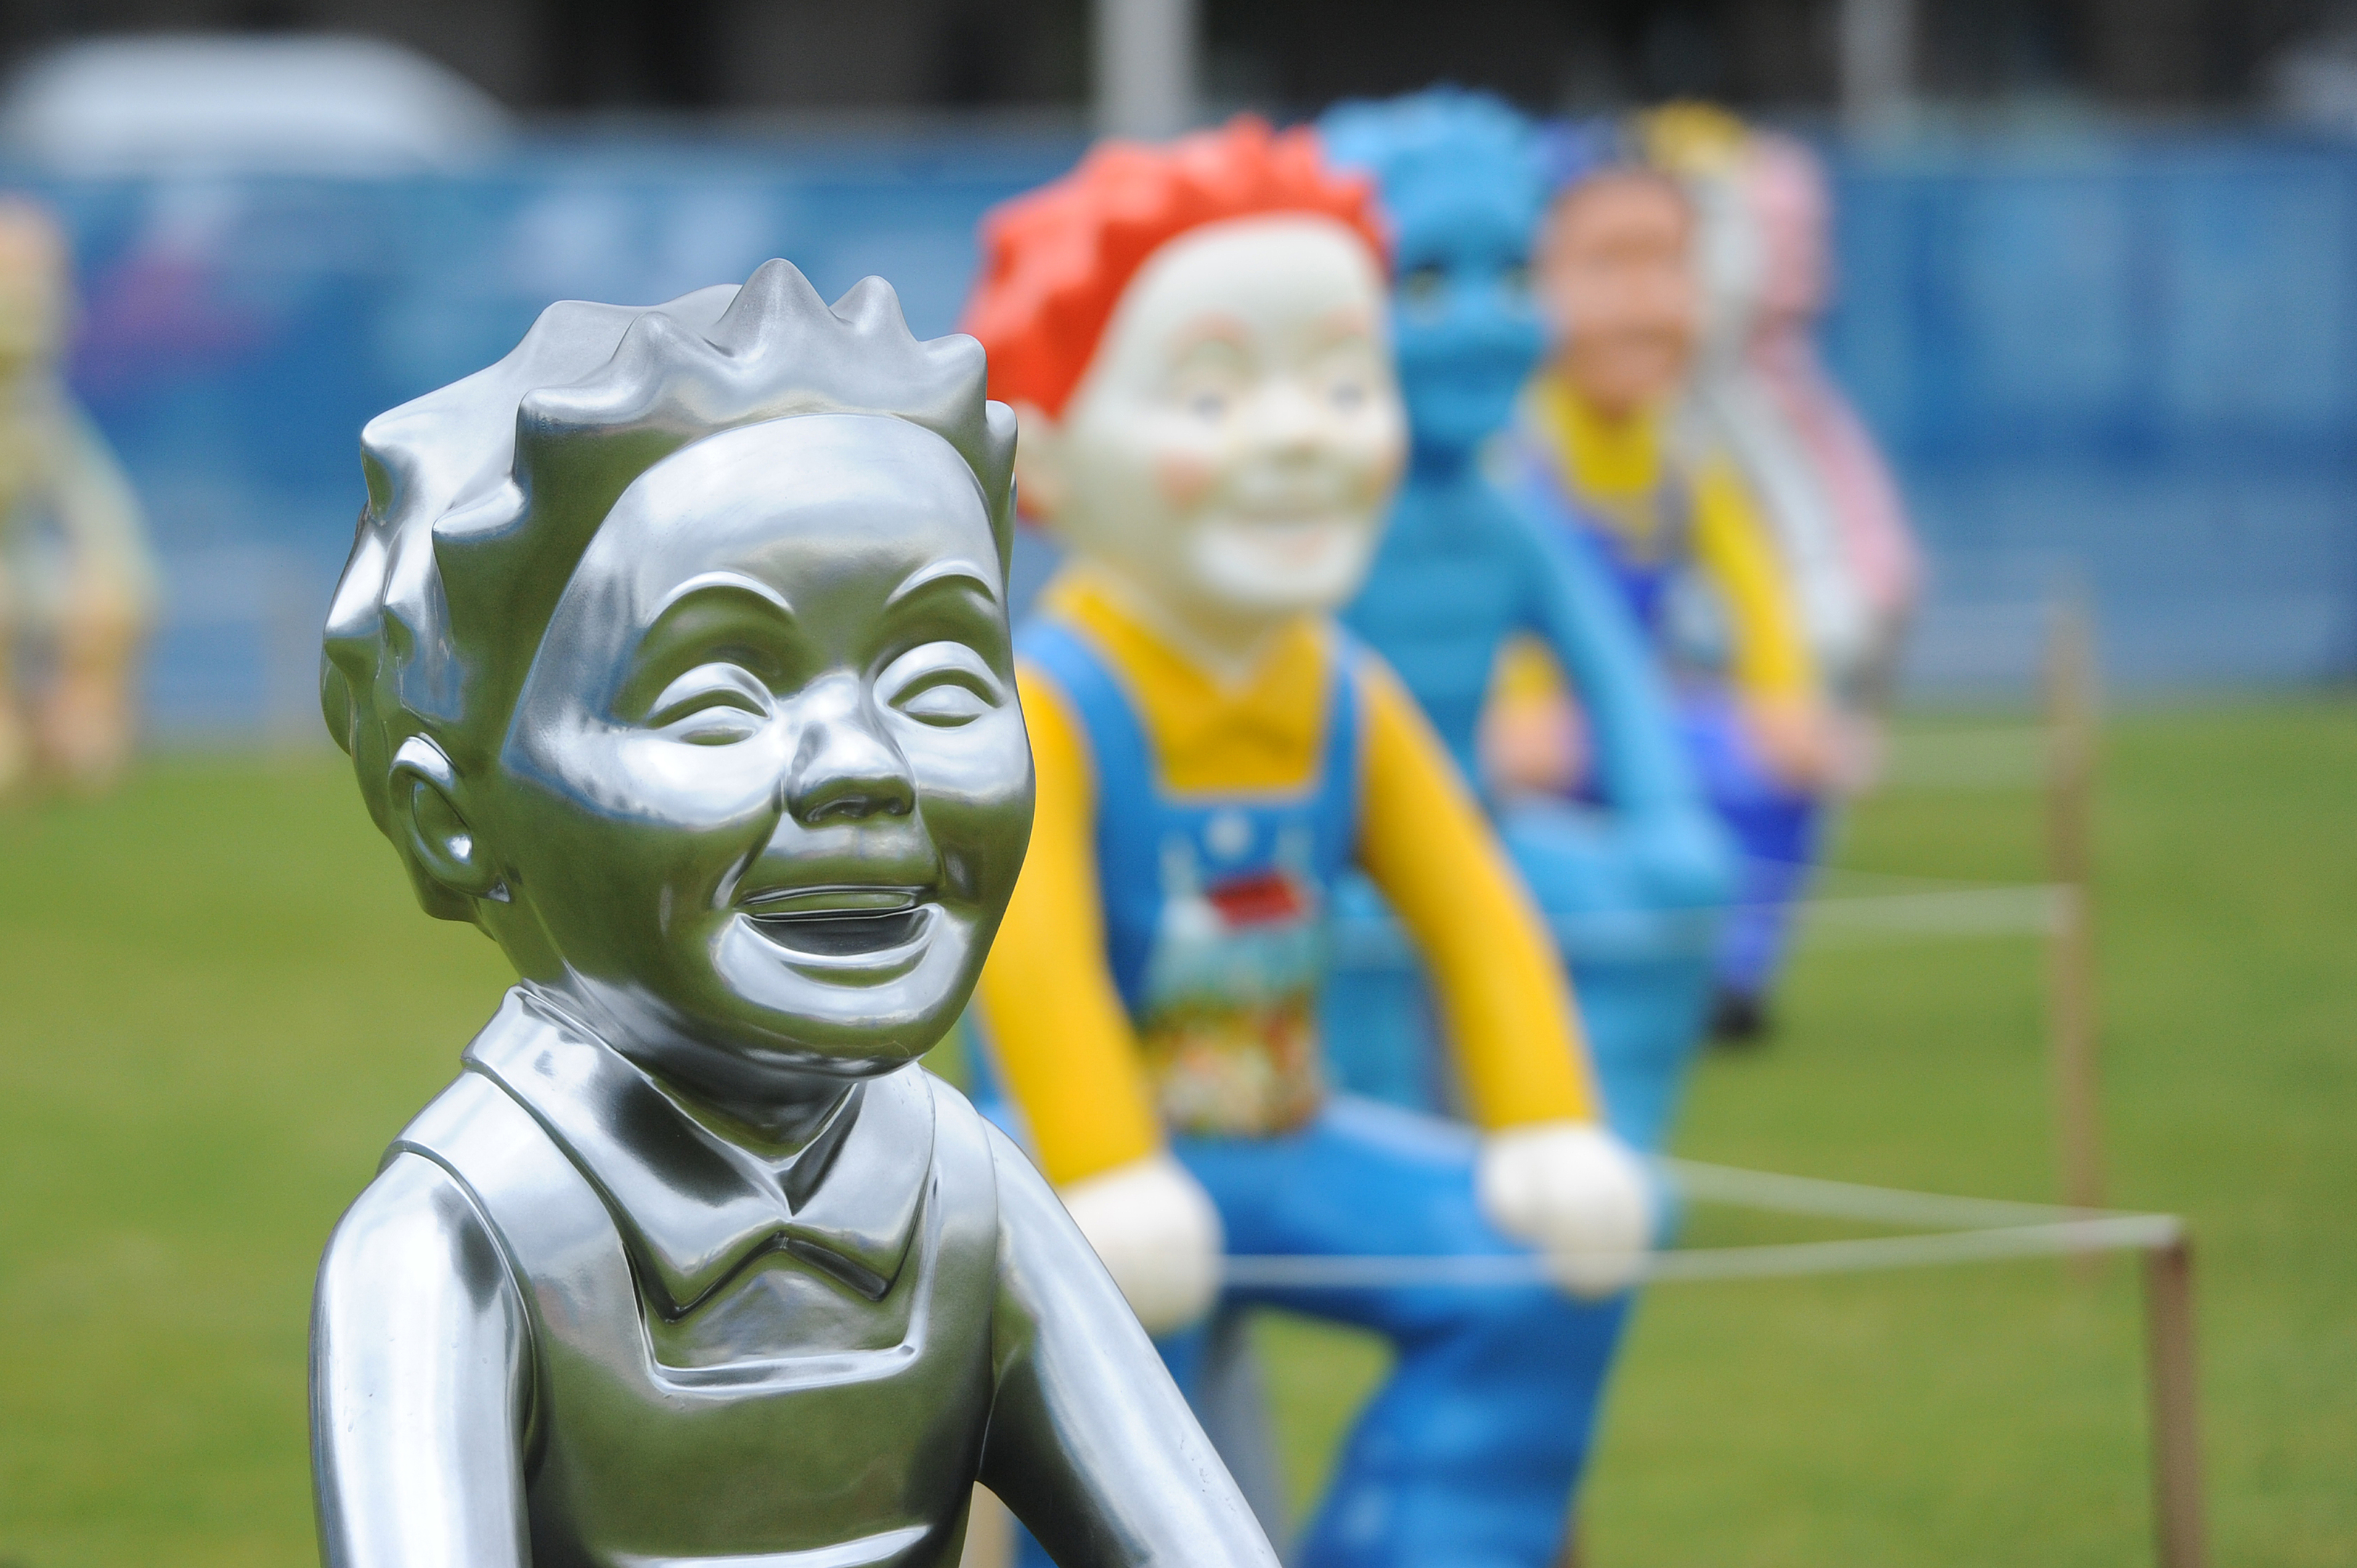 Oor Wullies in Slessor Gardens, Dundee (Kim Cessford / D C Thomson)